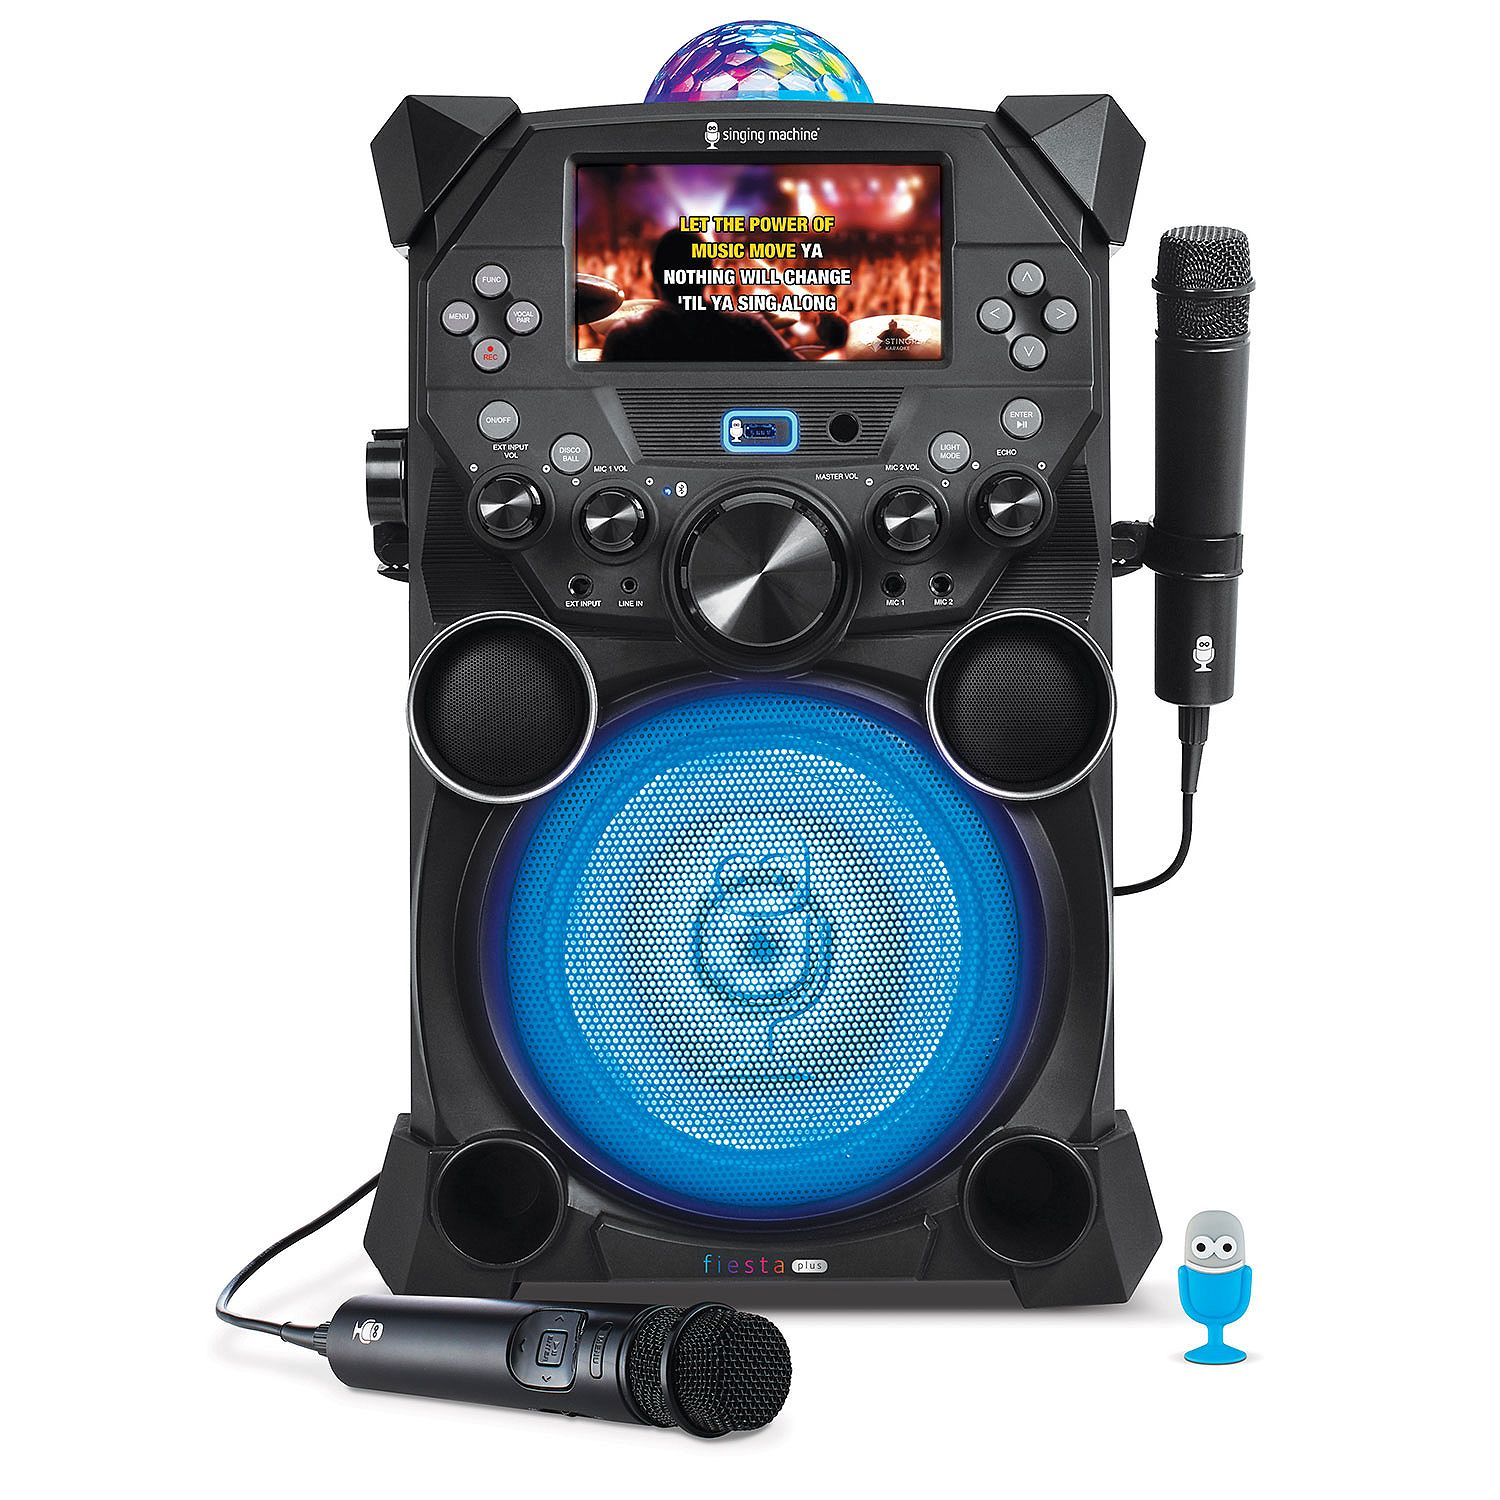 Refurbished Singing Machine SDL9039 Fiesta Plus Hi-Def Karaoke System